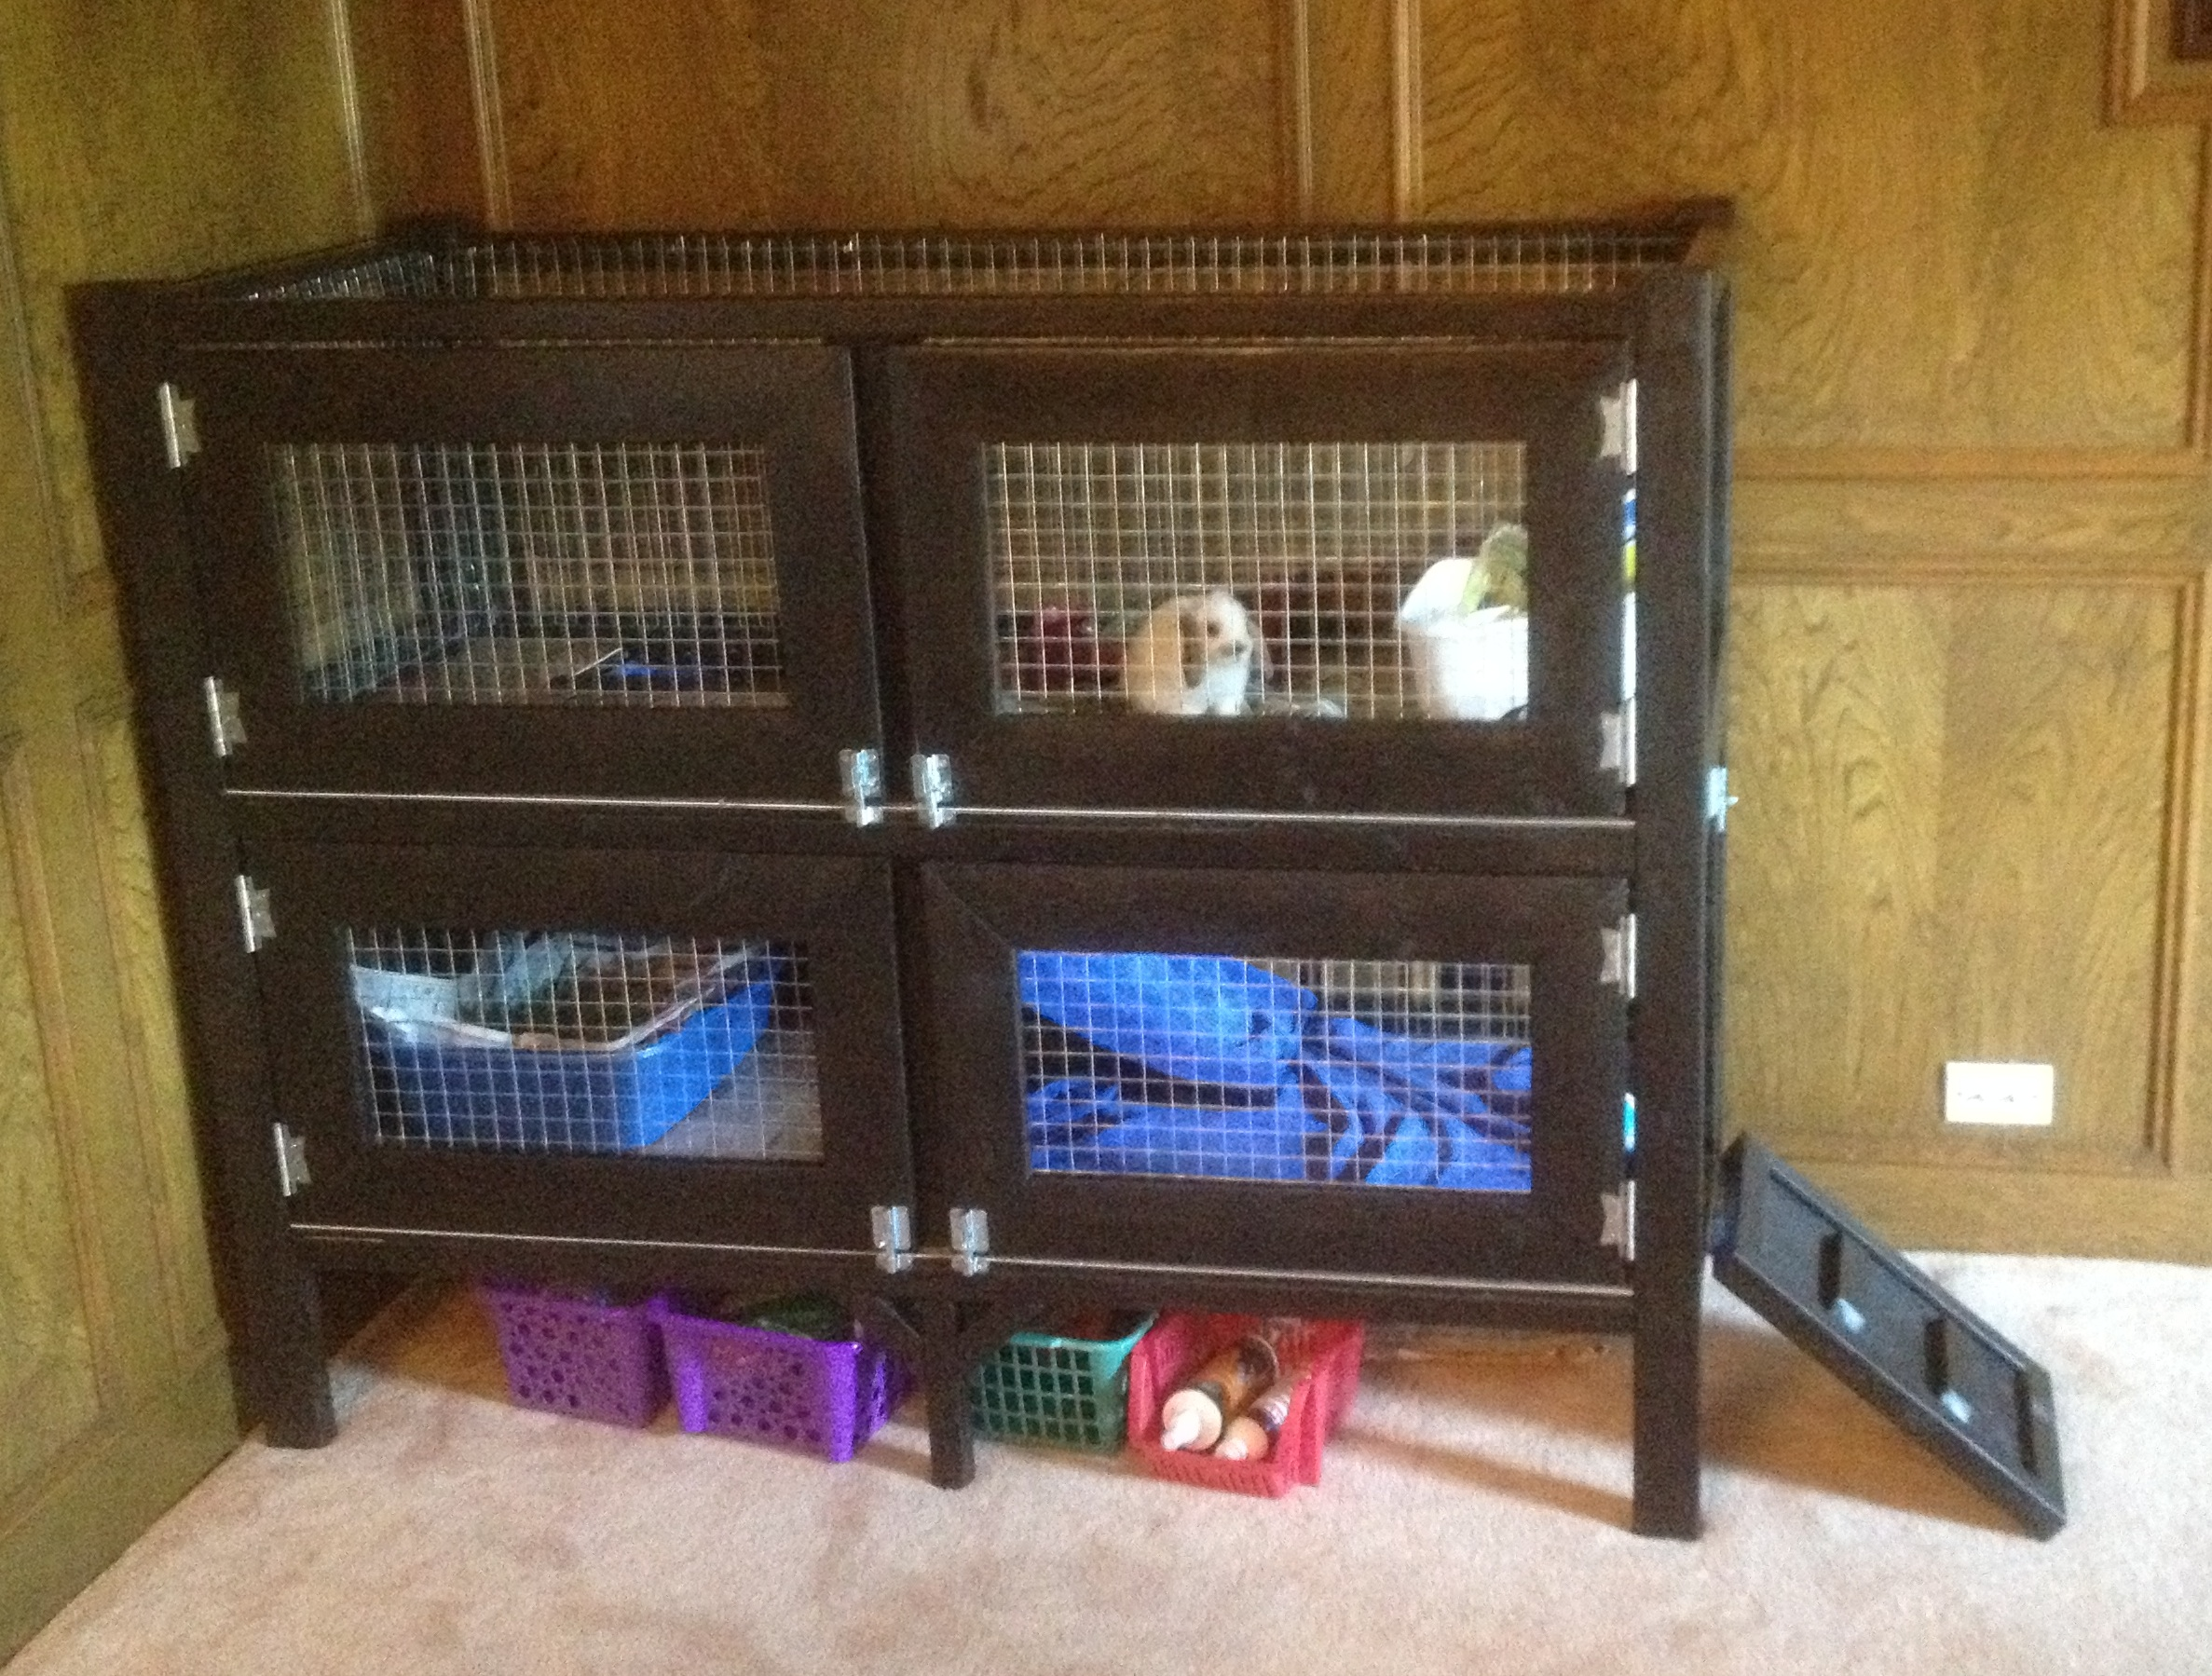 25 free rabbit hutch plans you can diy within a weekend for Diy hutch plans